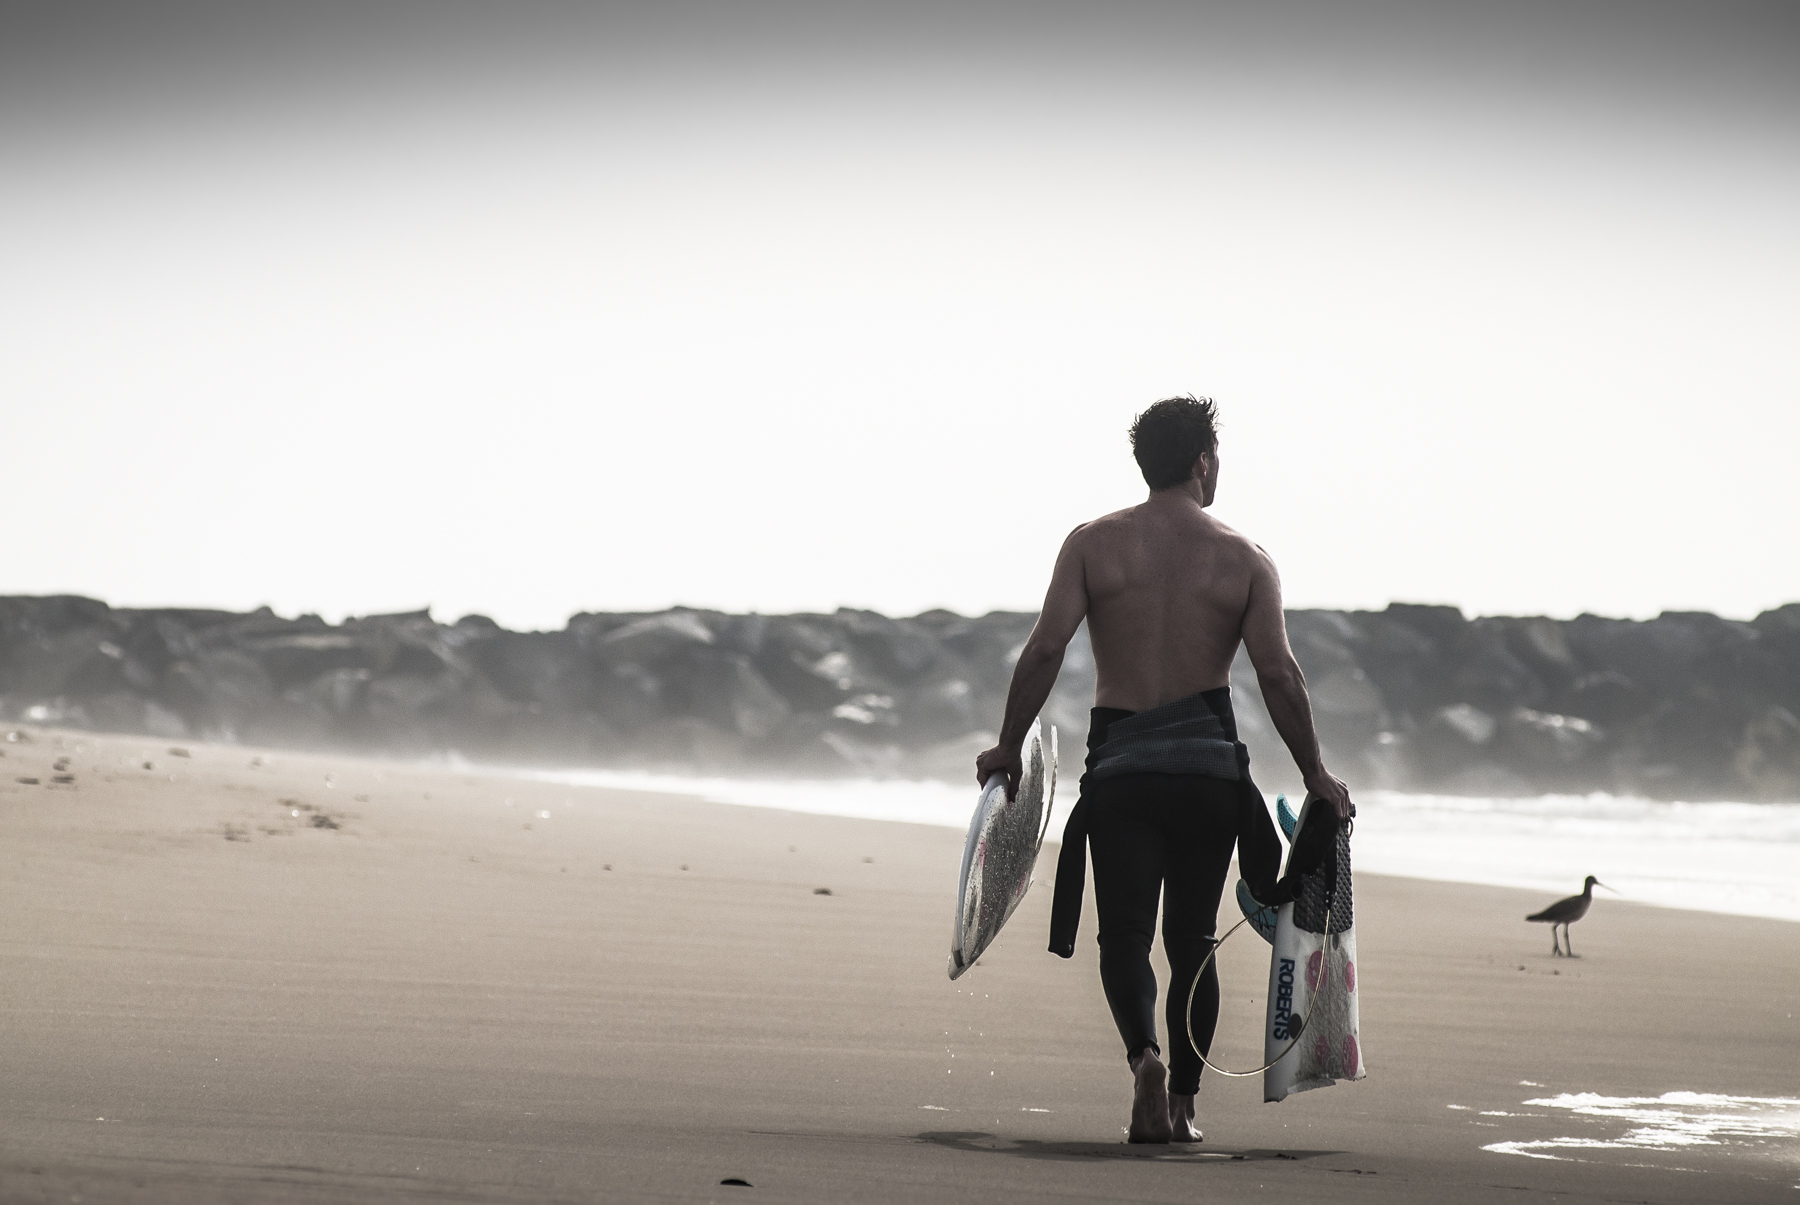 Unknown lives to surf another day.